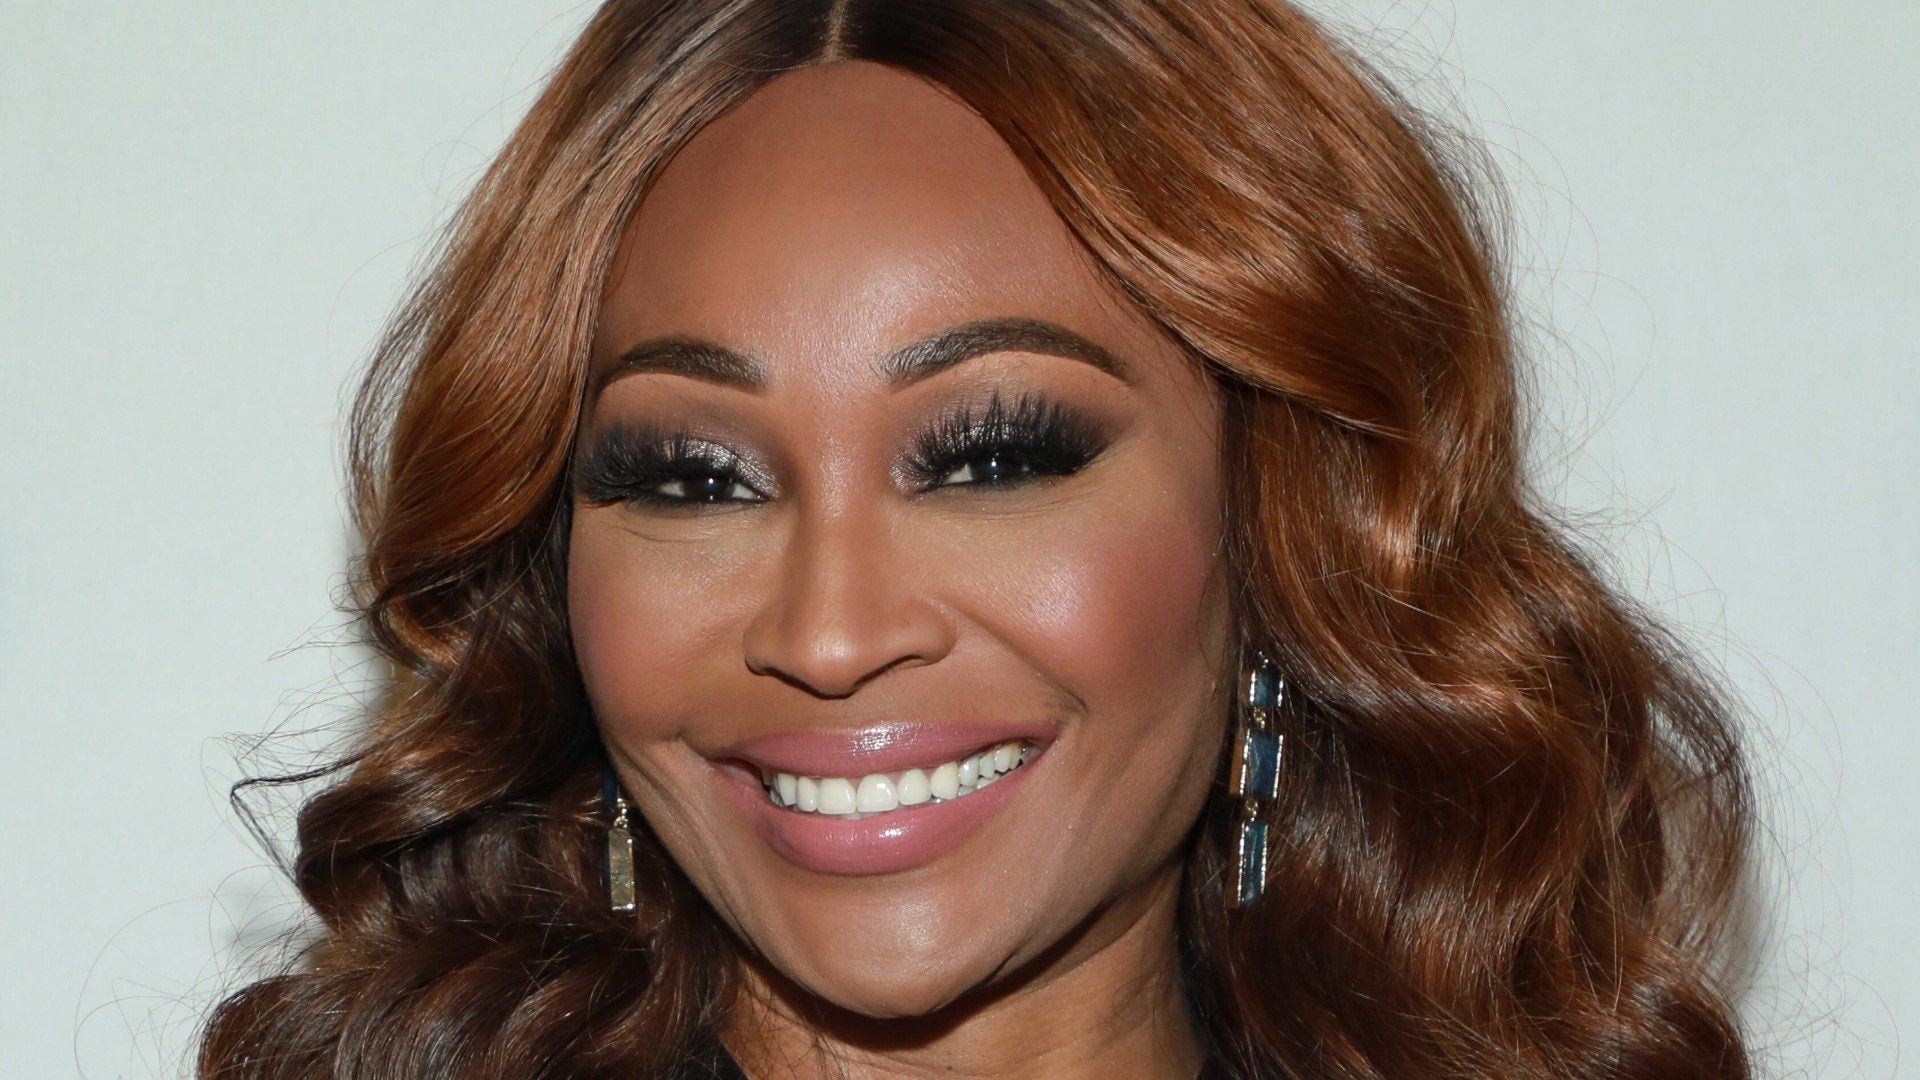 This Is How Cynthia Bailey Is Getting Her Glow During The Pandemic